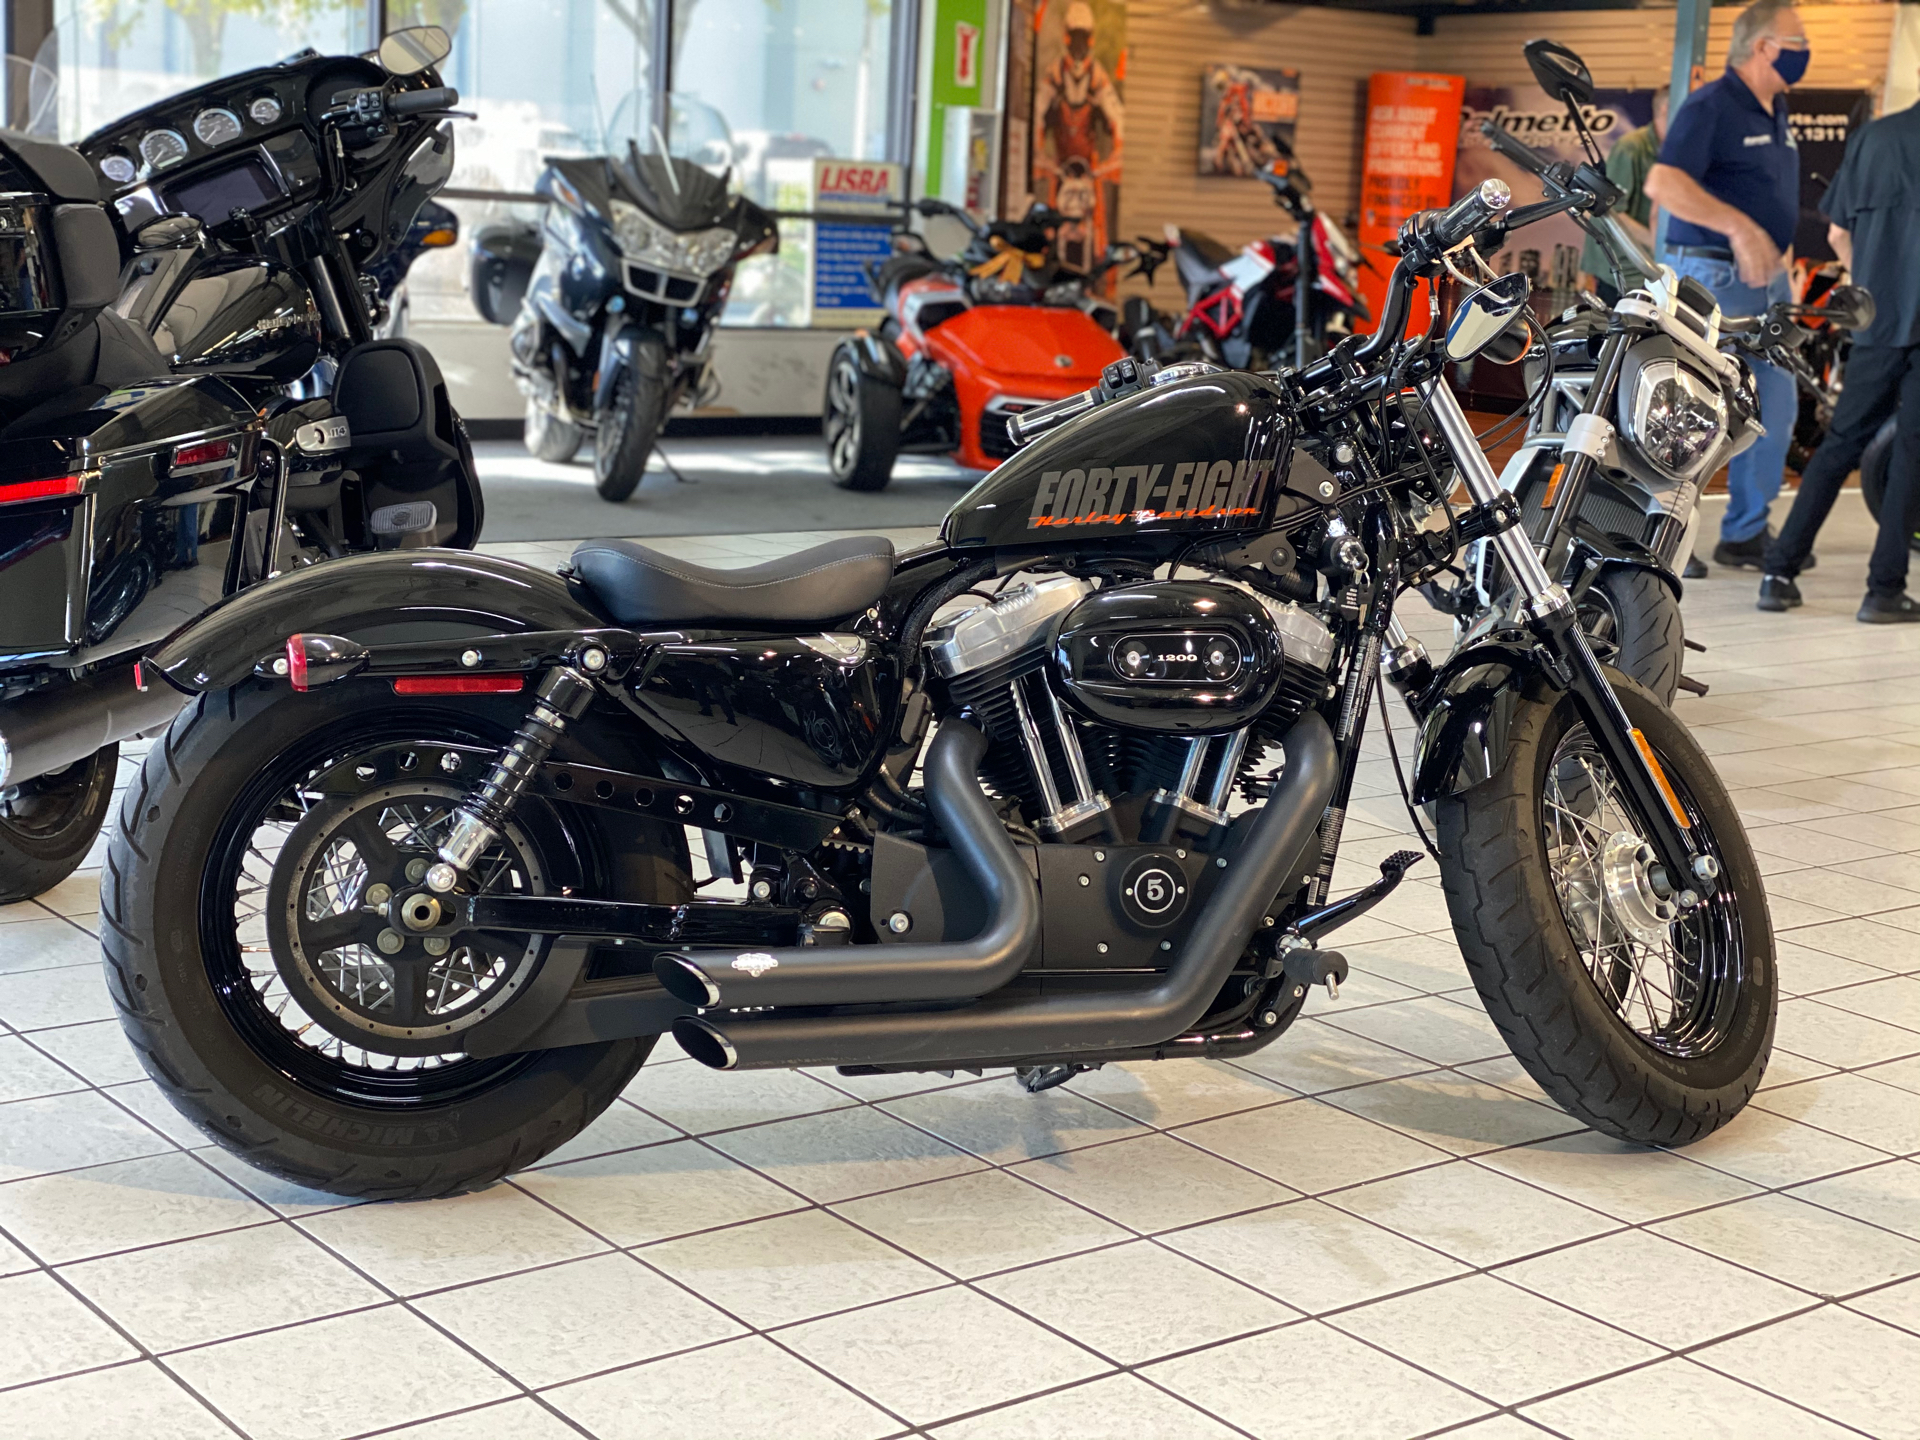 Used 2014 Harley Davidson Sportster Forty Eight Motorcycles In Hialeah Fl